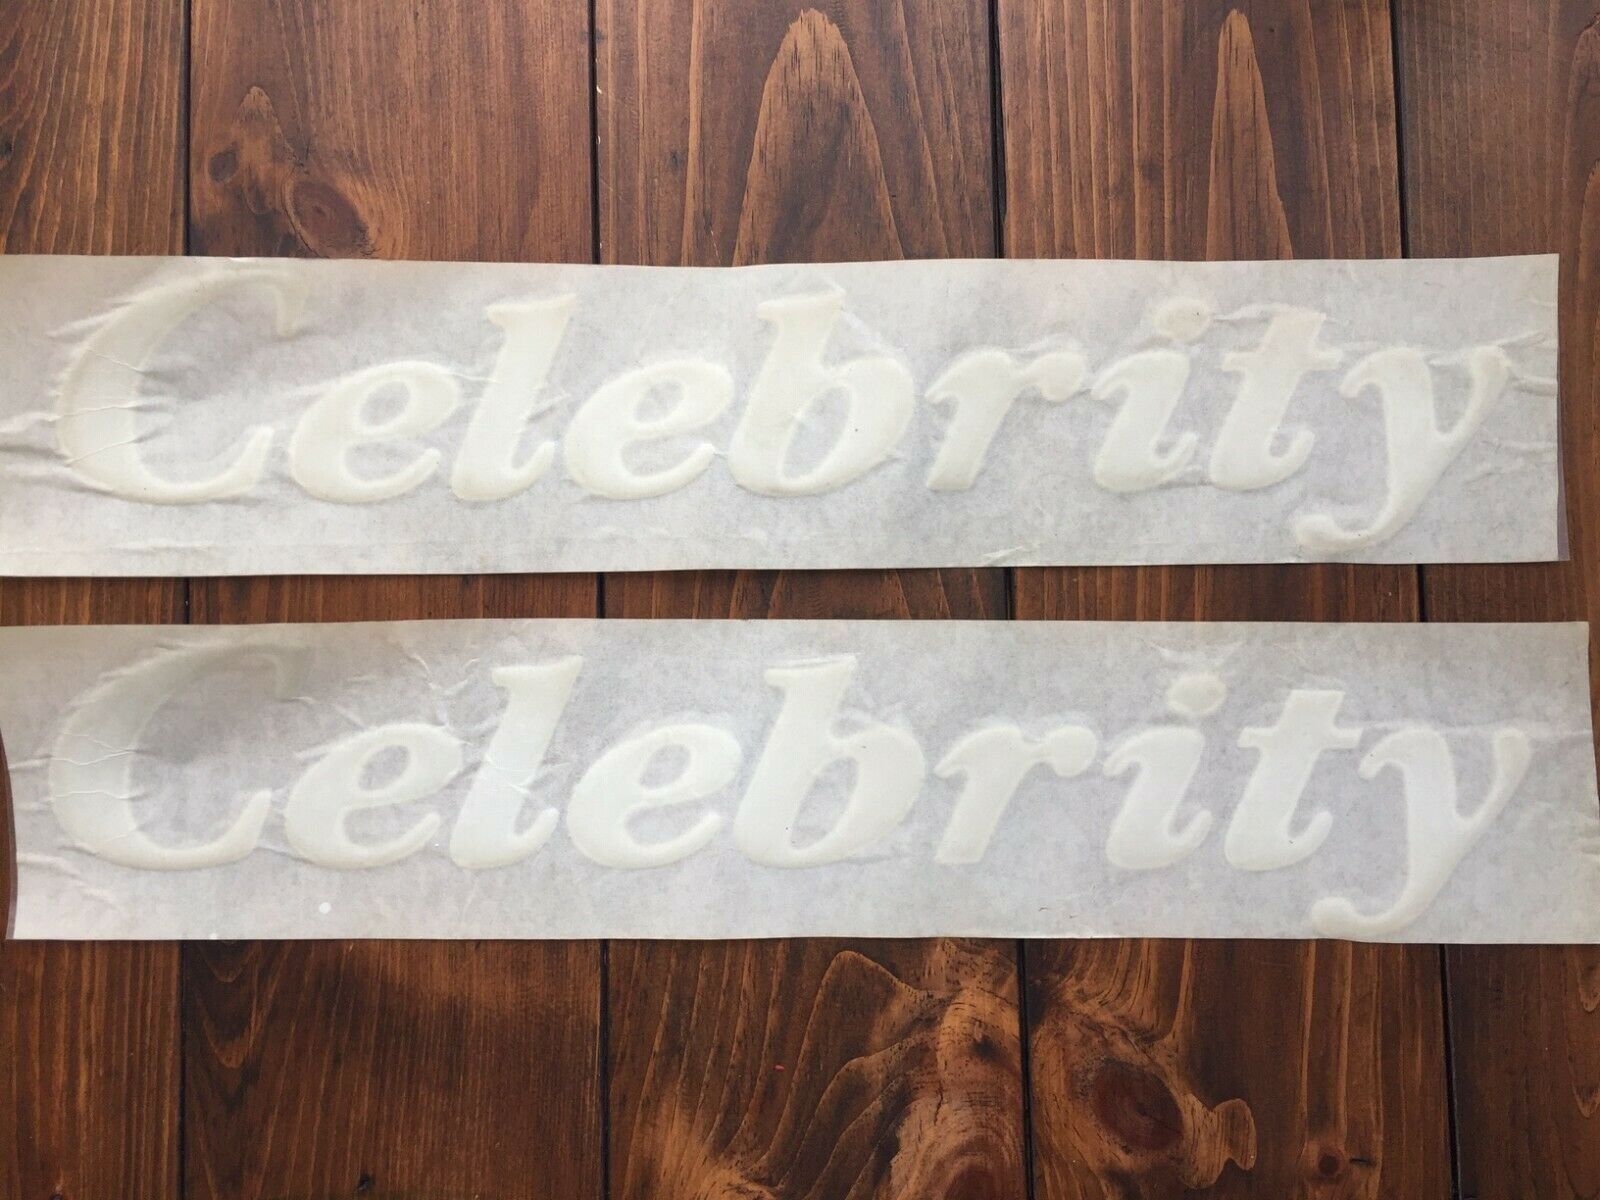 Celebrity Boat Side Stickers Decals White NOS Vintage 17 3/4'' Pair Original NEW